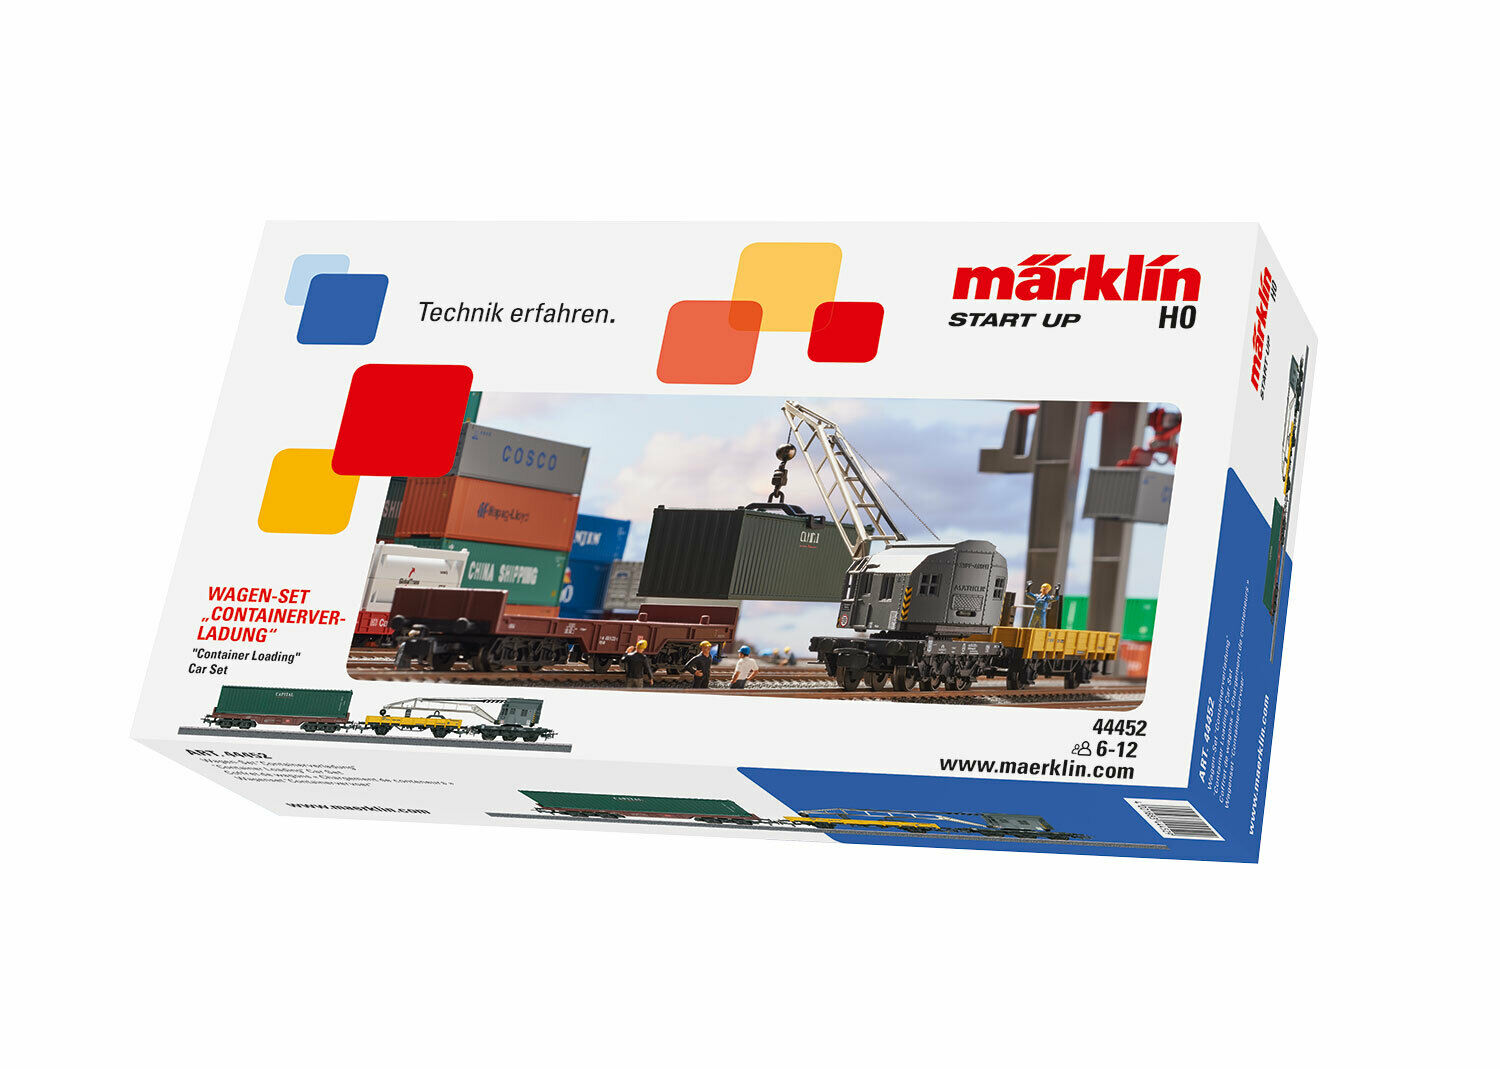 Märklin start up-auto-set  recipientes  h0 (1 87), 44452